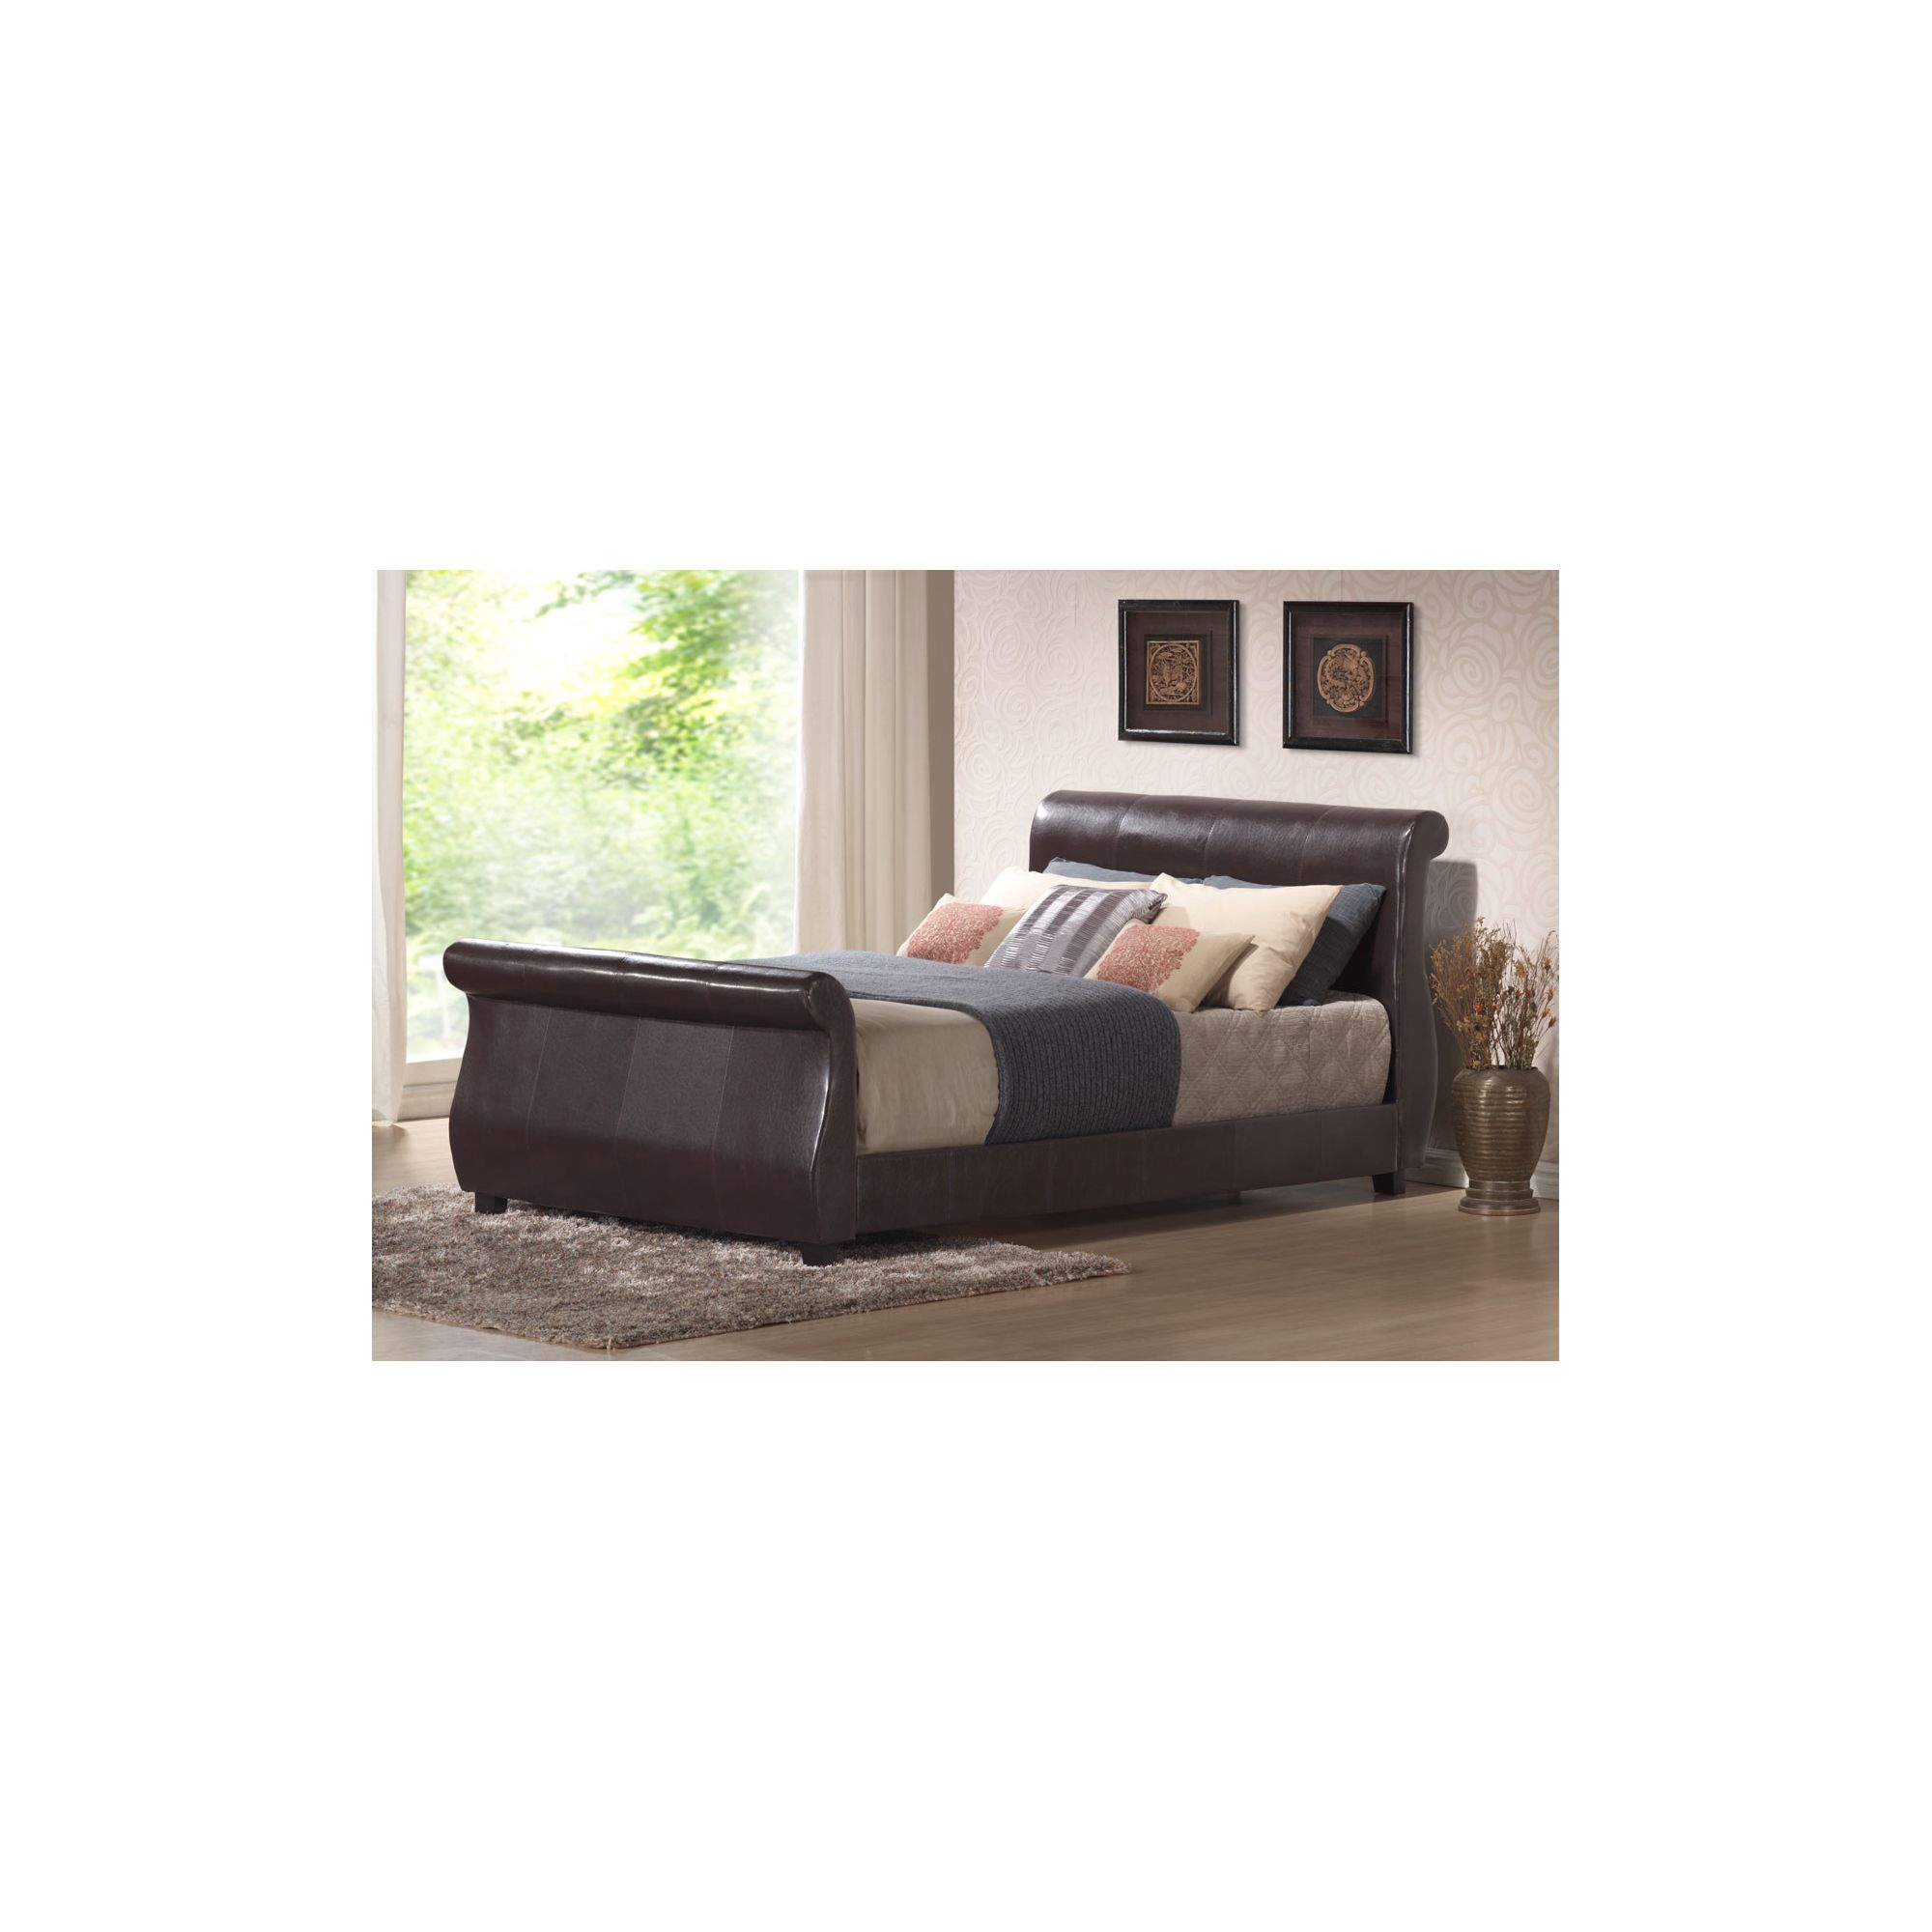 Interiors 2 suit Winchester Bedframe - Brown - King at Tesco Direct